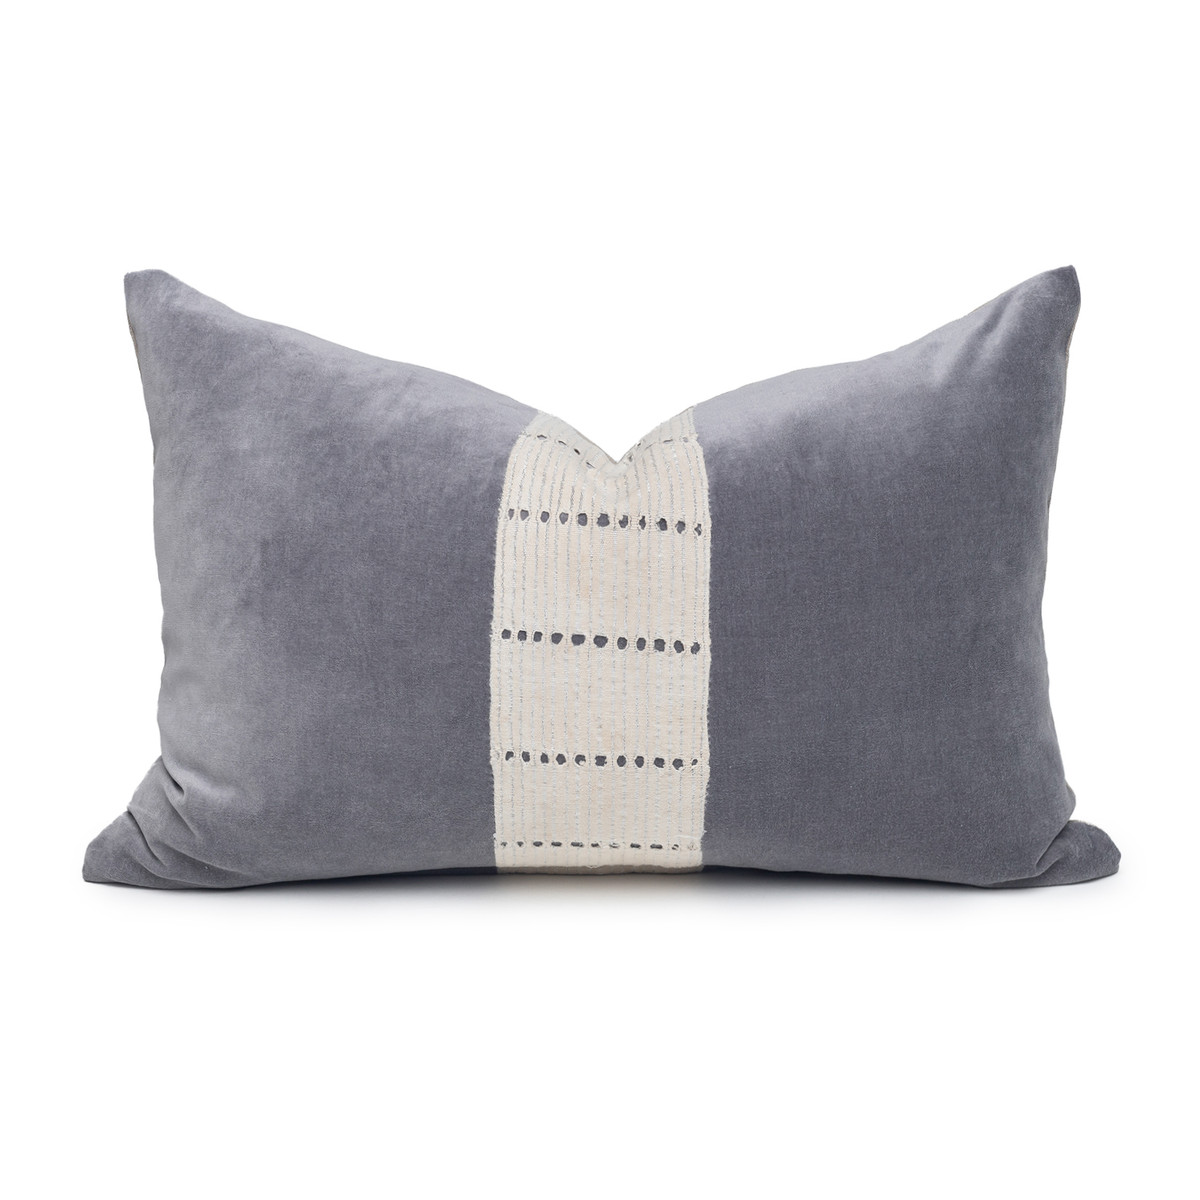 Angel Luxe Vintage Lumbar Pillow with African Aso Oke Textiles and 100% Eco-friendly Topanga linen in Natural & Cotton Velvet- 1420- Front View